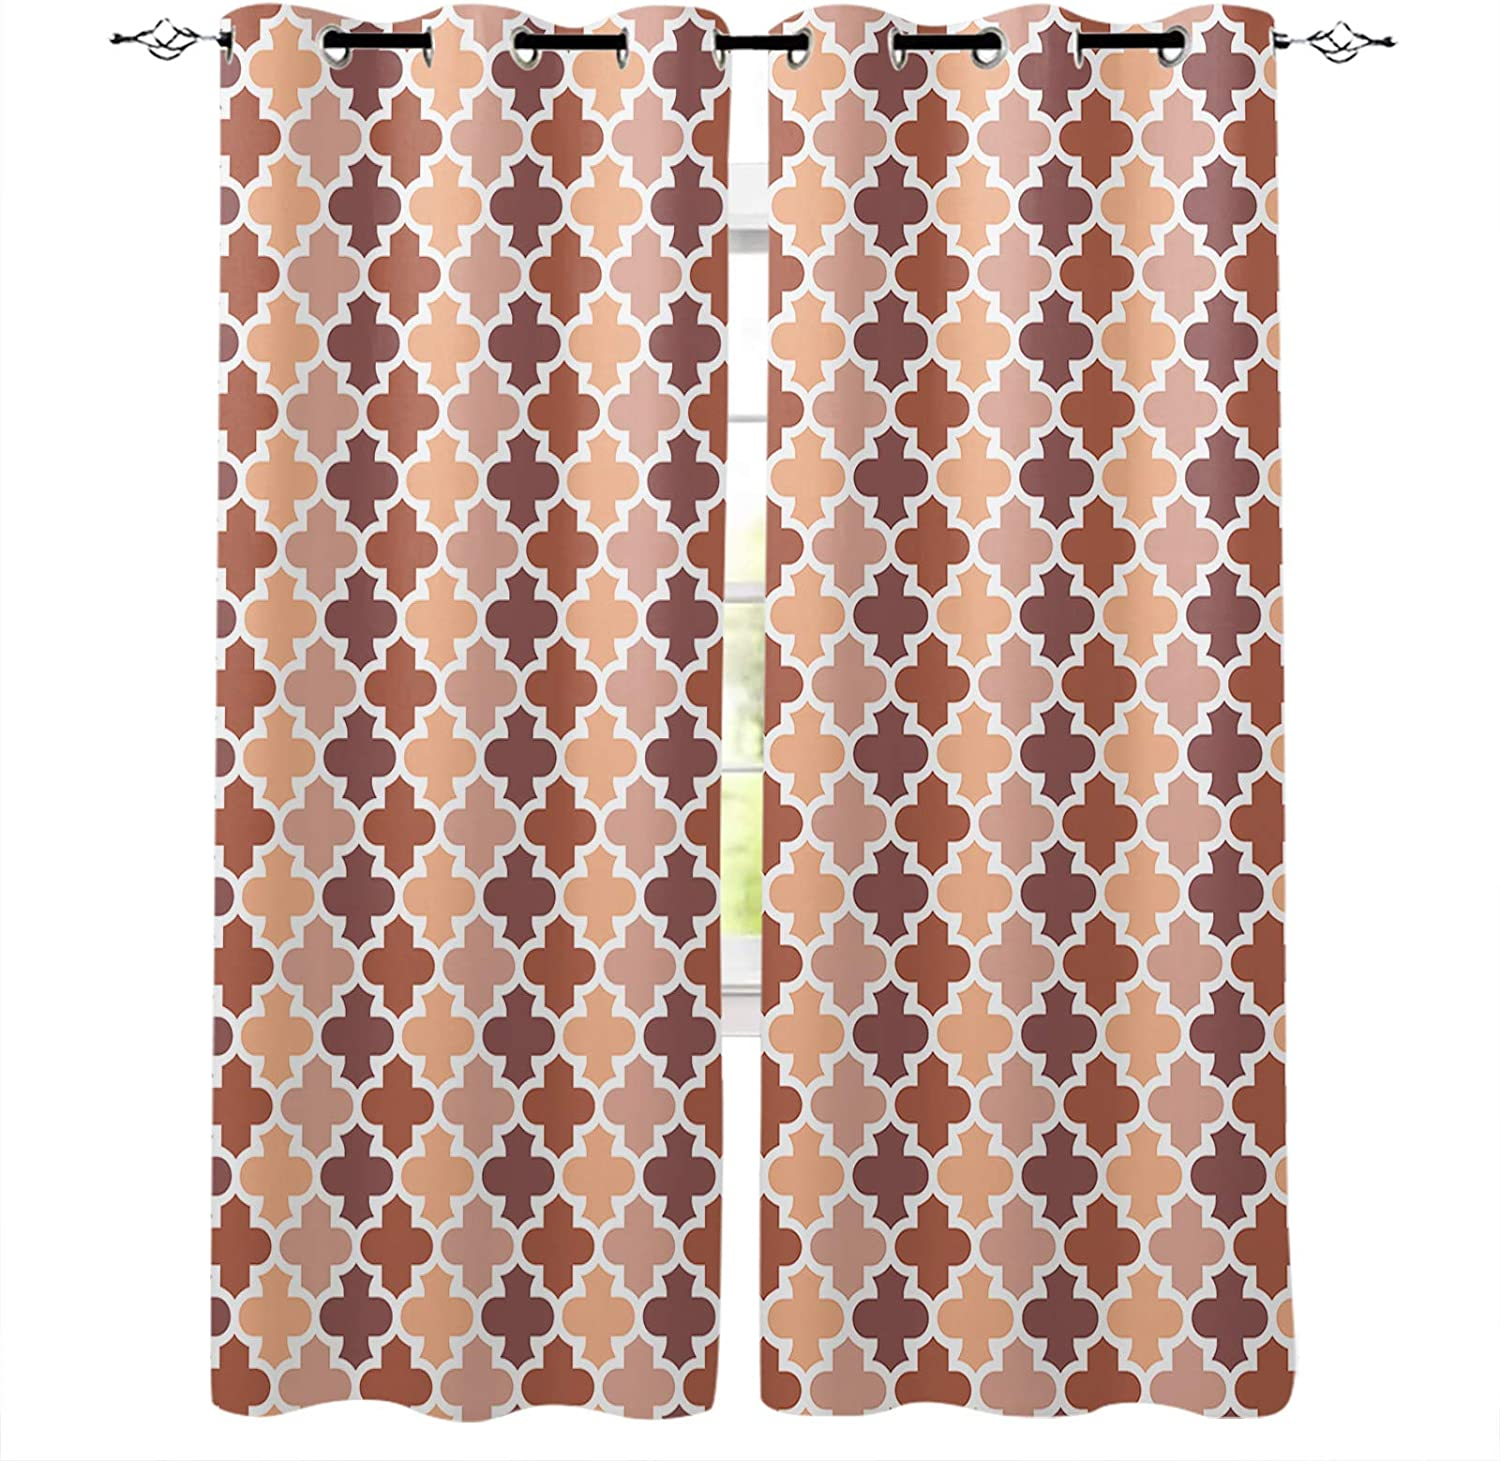 Blackout Curtains for New York Mall Bedroom-Room Thermal Insulated Seasonal Wrap Introduction C Darkening